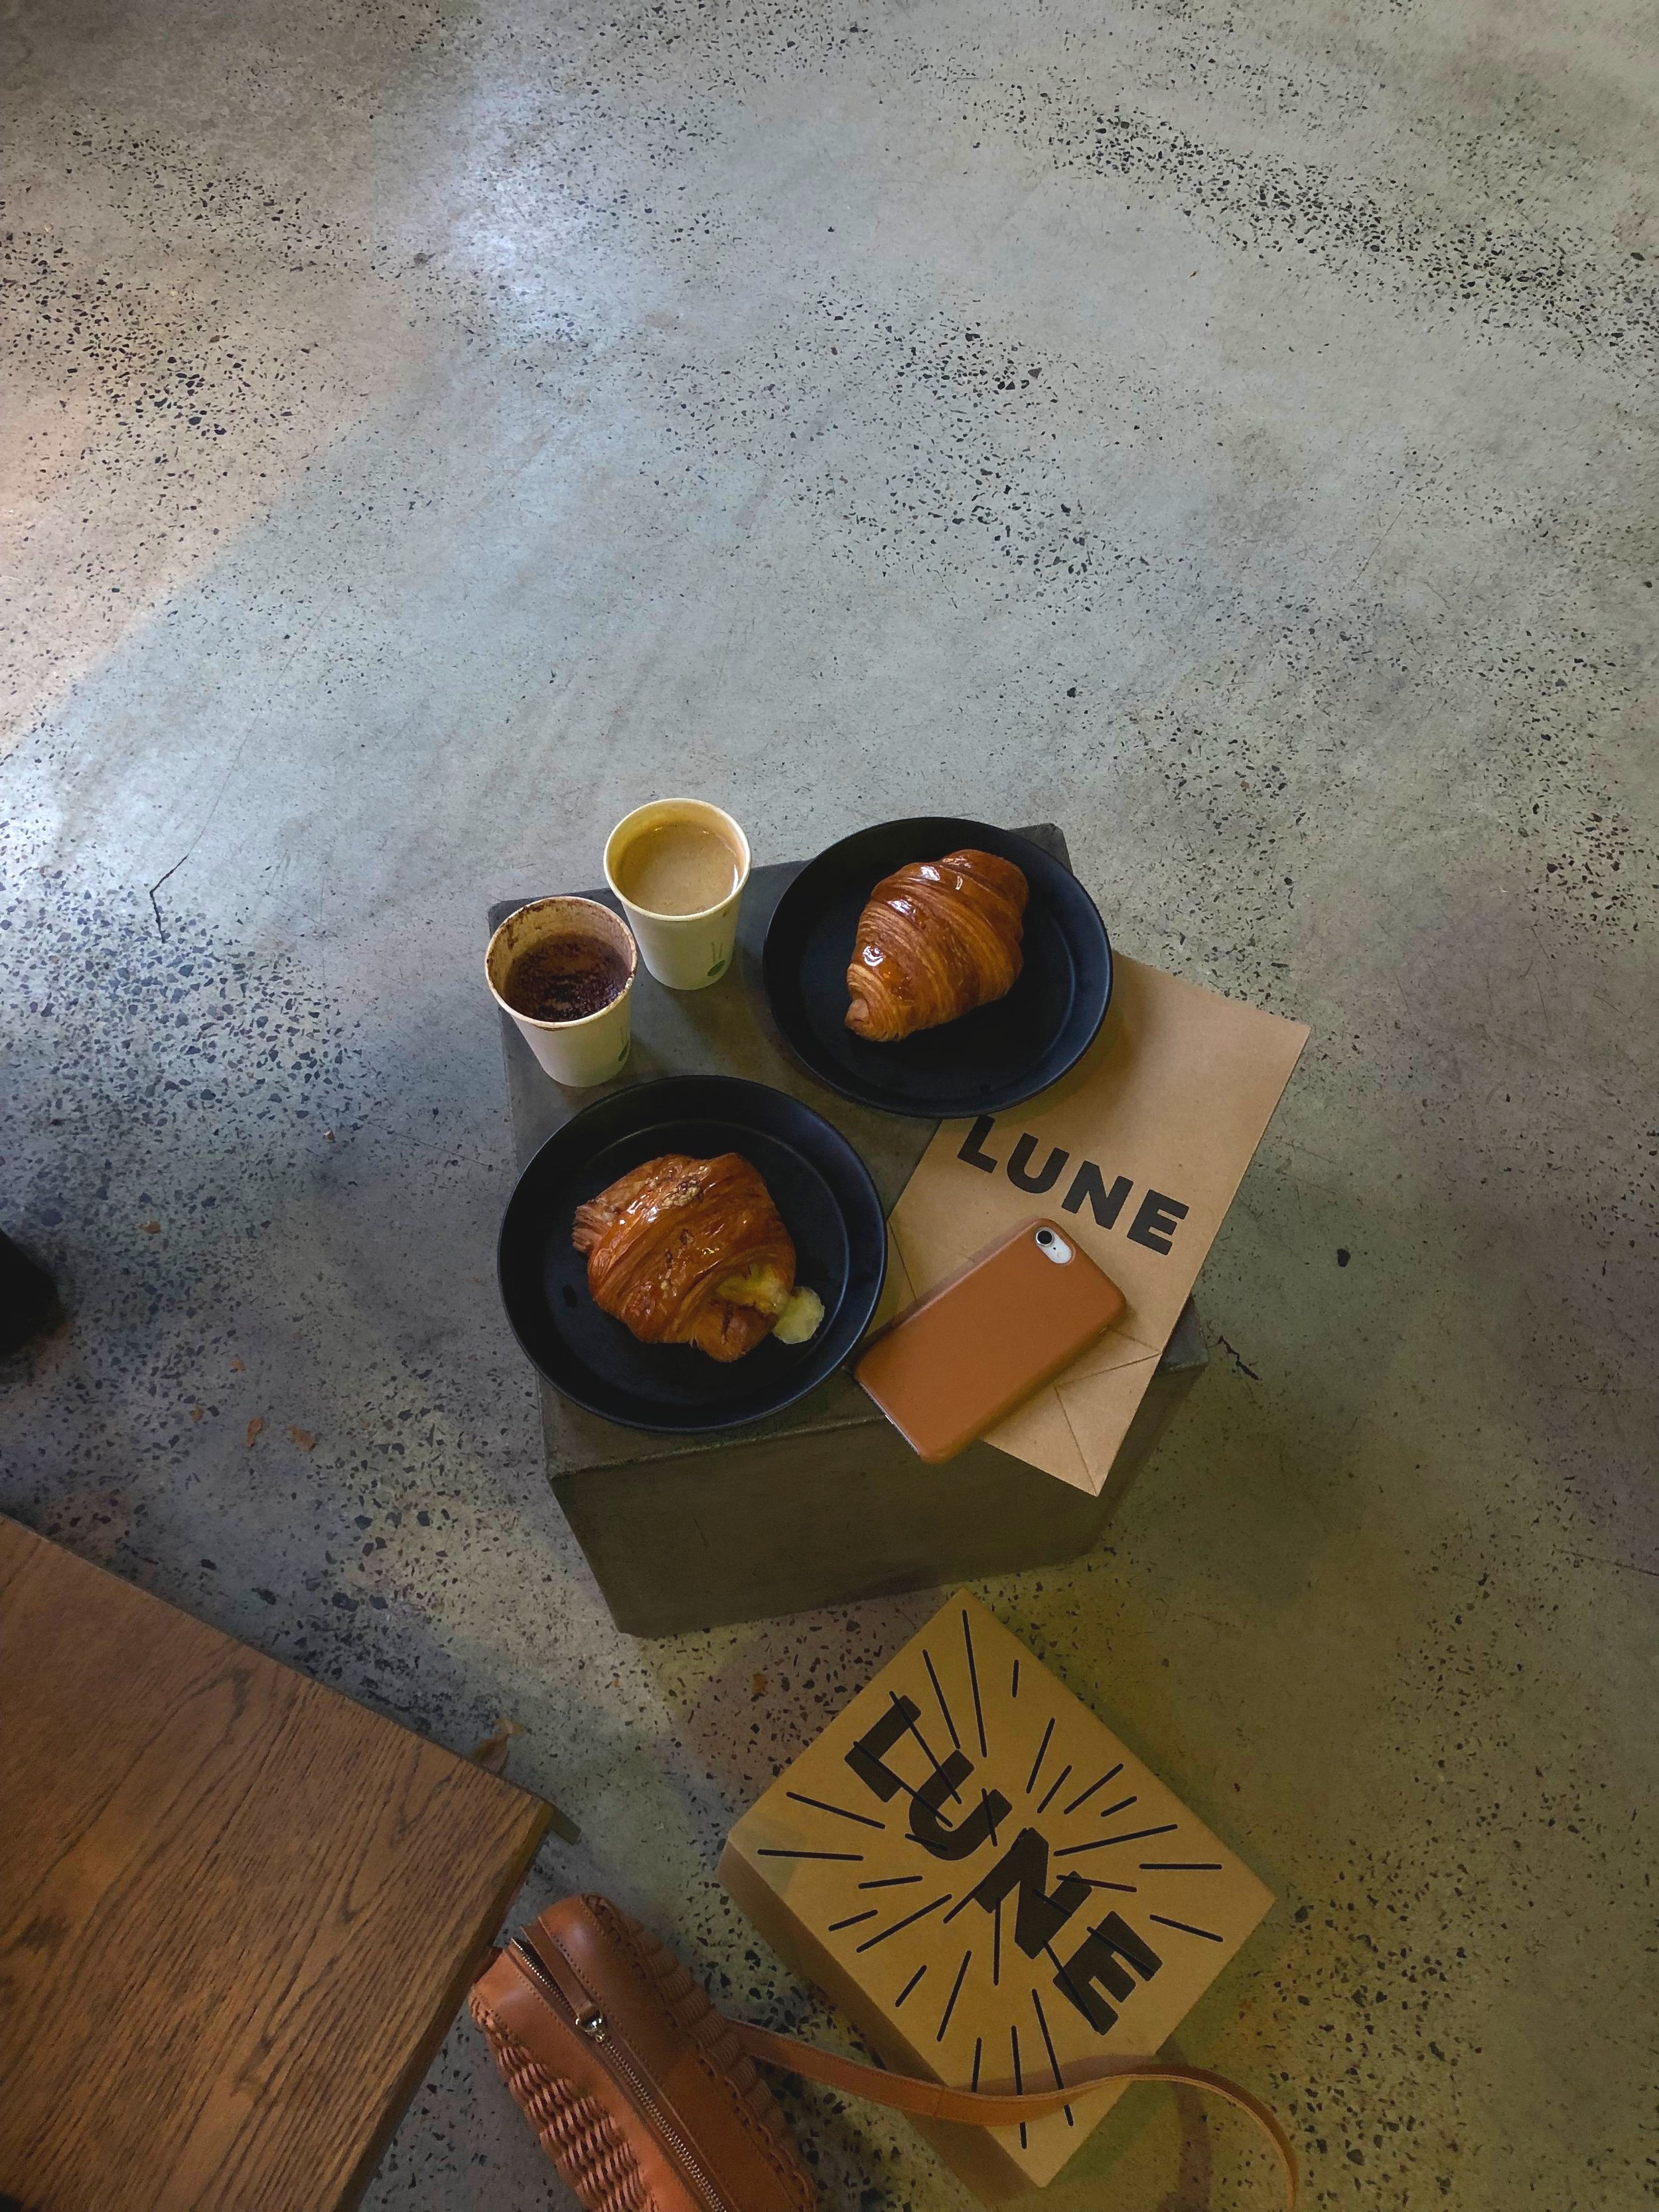 LUNE ▼ /  Lune Croissanterie  coming for the signature croissants here and we are not disappointed! 📍119 Rose St, Fitzroy VIC 3065